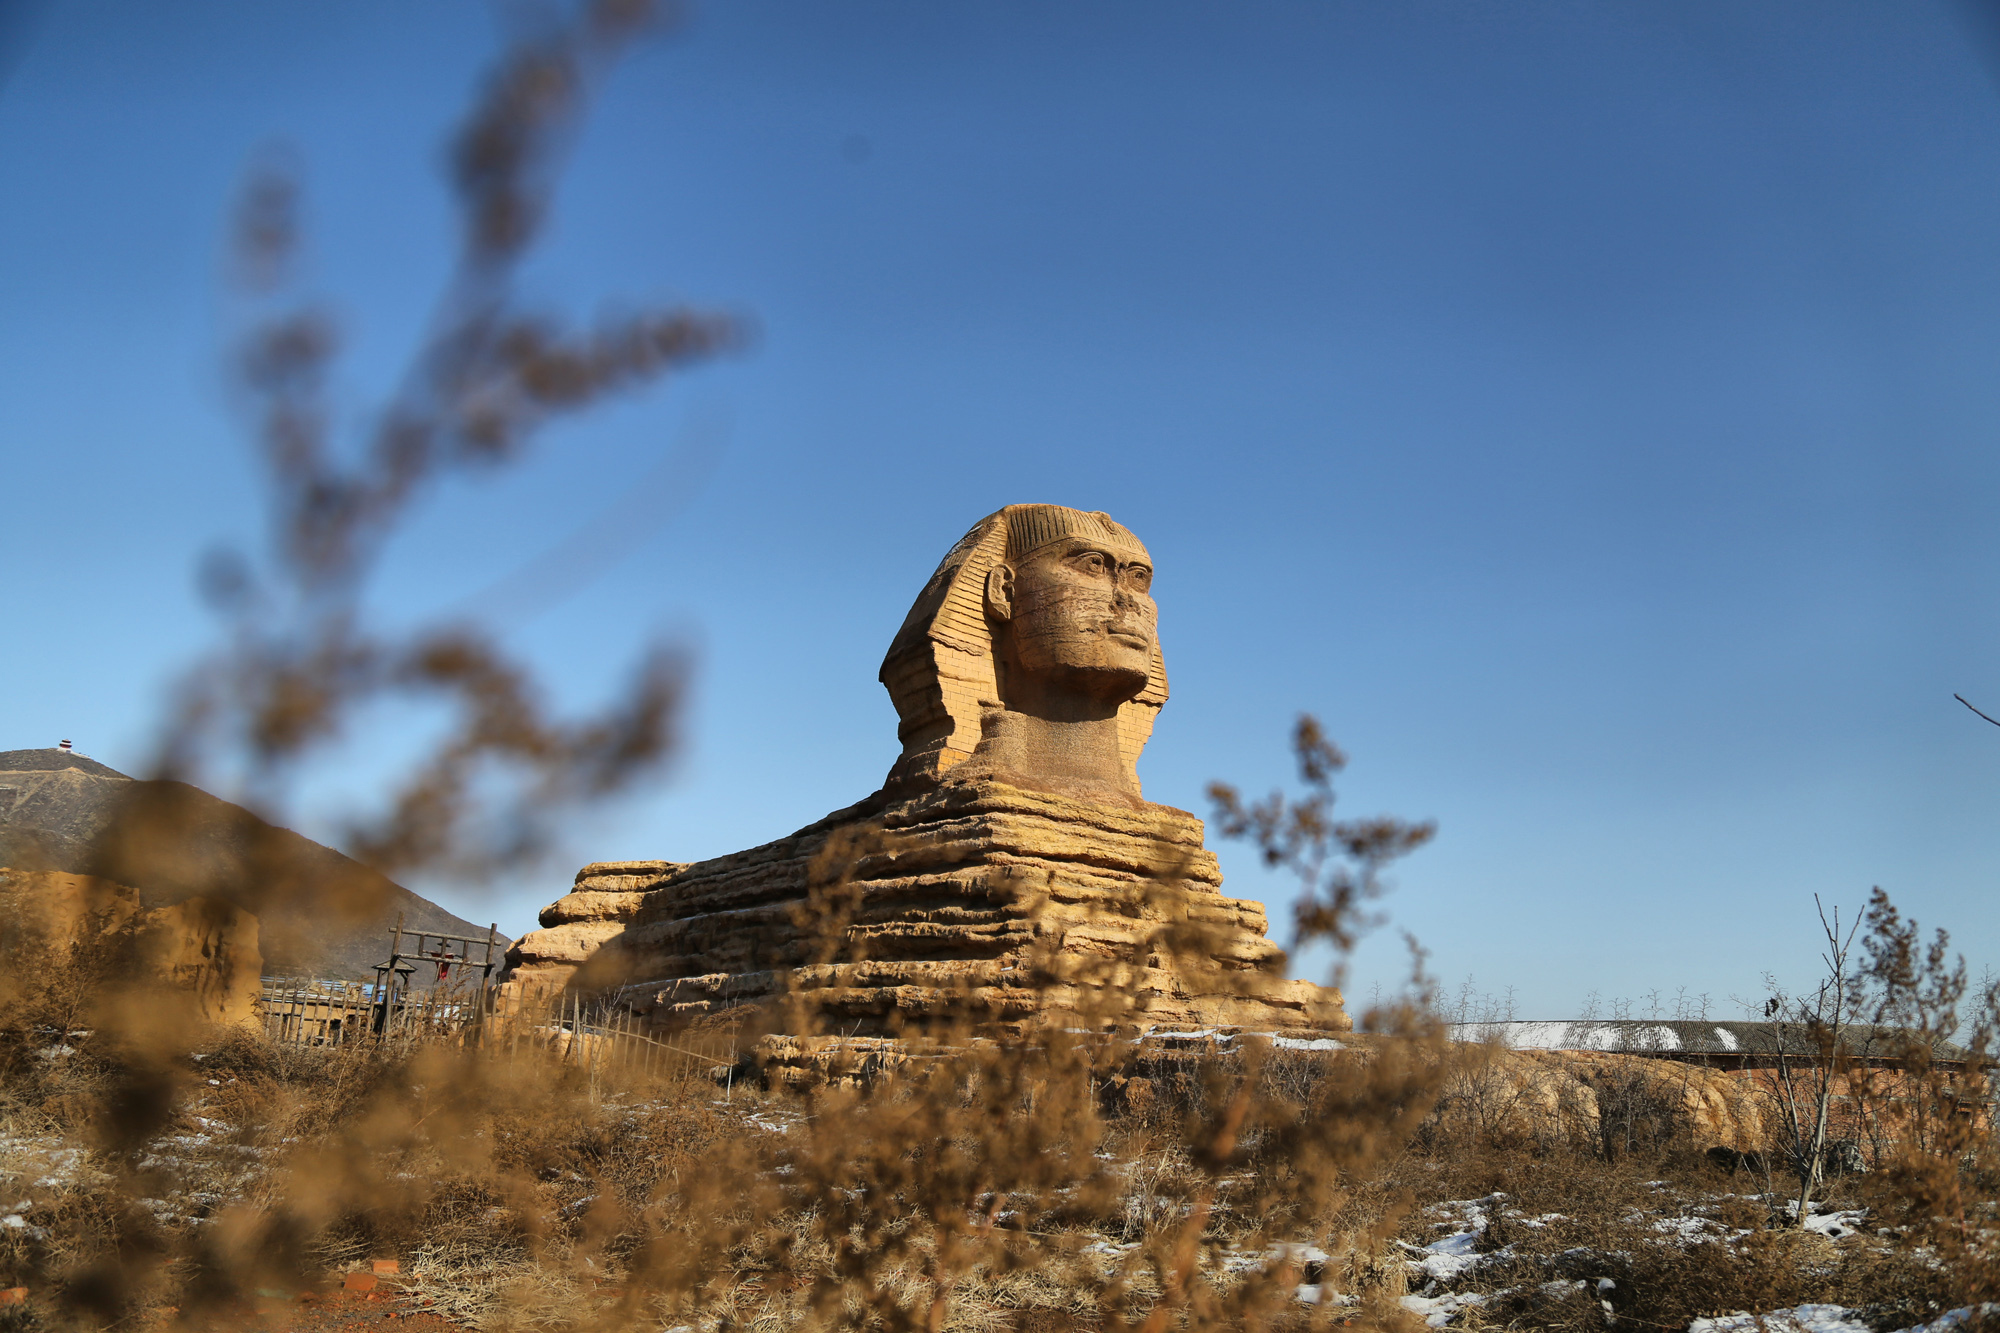 Slide 40 of 57: SHIJIAZHUANG, CHINA - DECEMBER 03: (CHINA OUT) A replica of Sphinx is seen in a new studio park on December 3, 2015 in Shijiazhuang, Hebei Province of China. A complex building mixed three-story China's Hall of Prayer for Good Harvest as its north part and a four-story western architecture as its south part was built in a new studio park which also contained replicas of Egyptian Sphinx, French Louvre Pyramid and some Chinese ancient buildings in Shijiazhuang. (Photo by VCG/VCG via Getty Images)